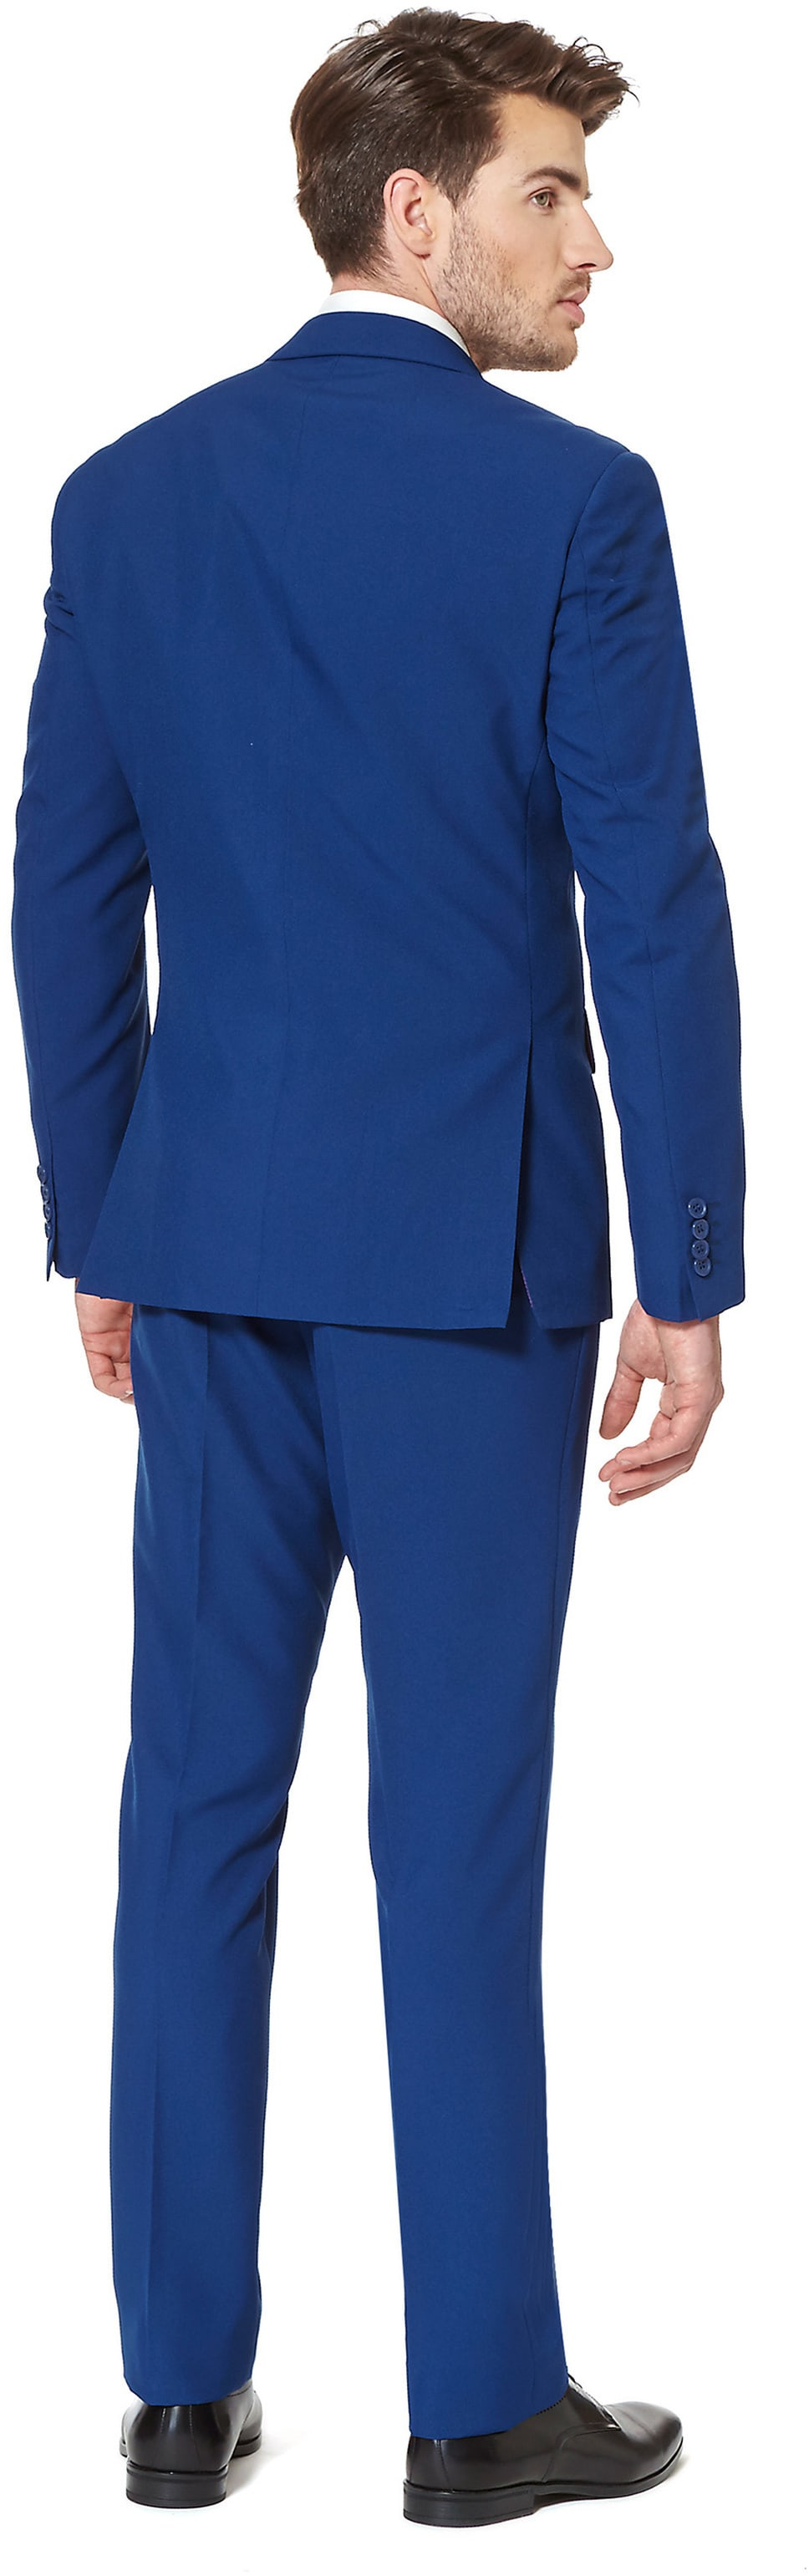 OppoSuits Navy Royale Suit foto 1